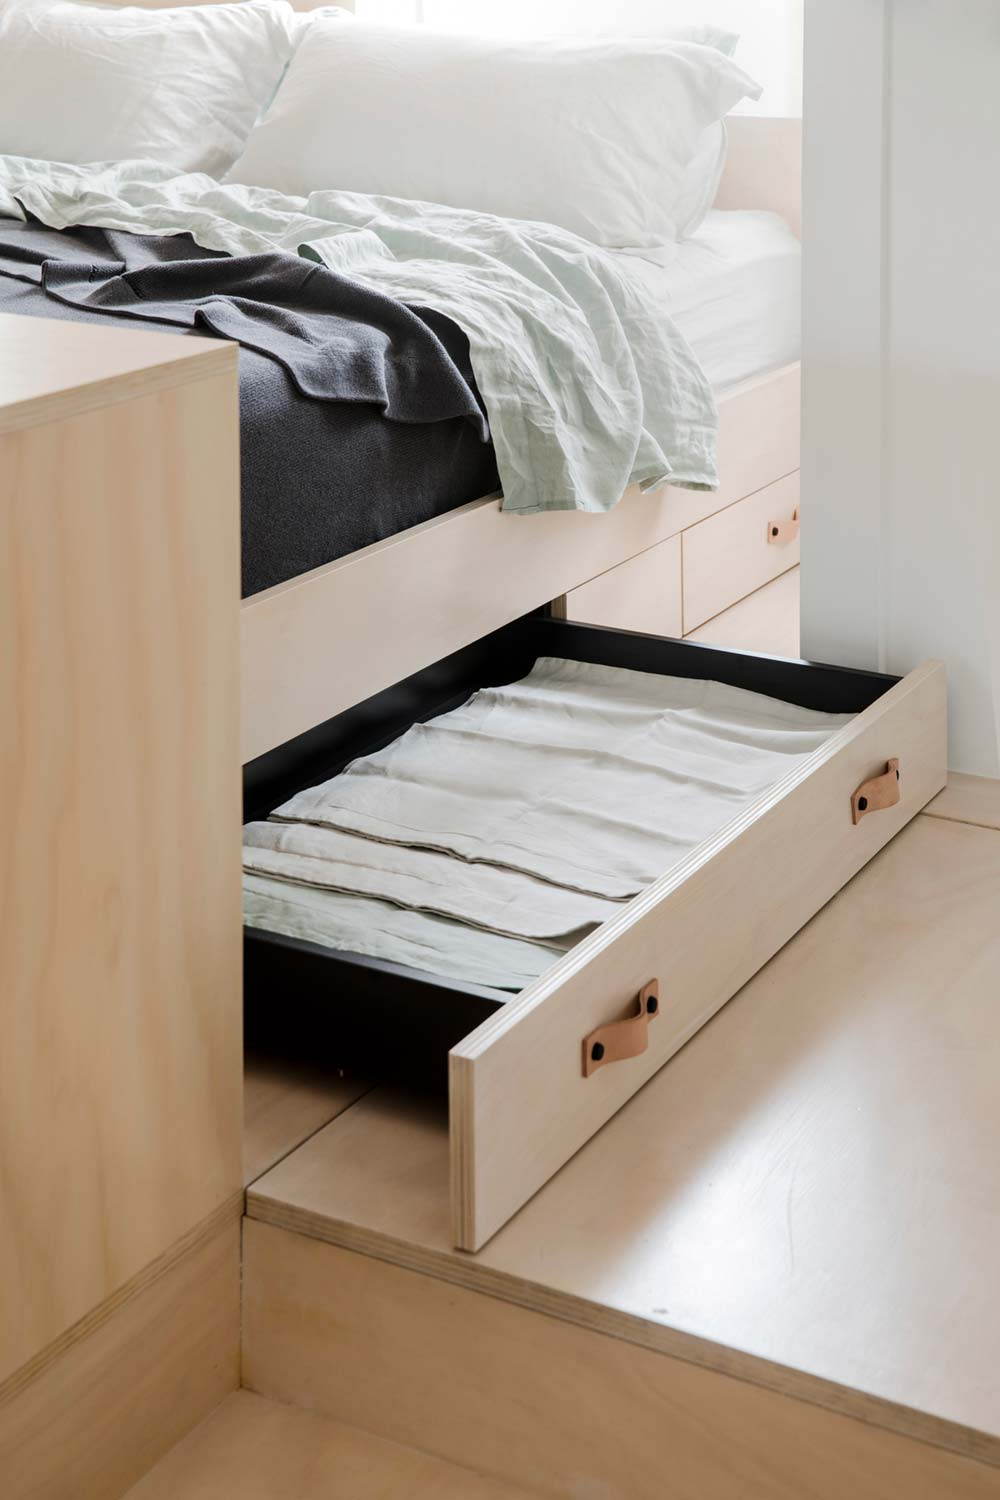 Tiny apartment under bed storage drawer